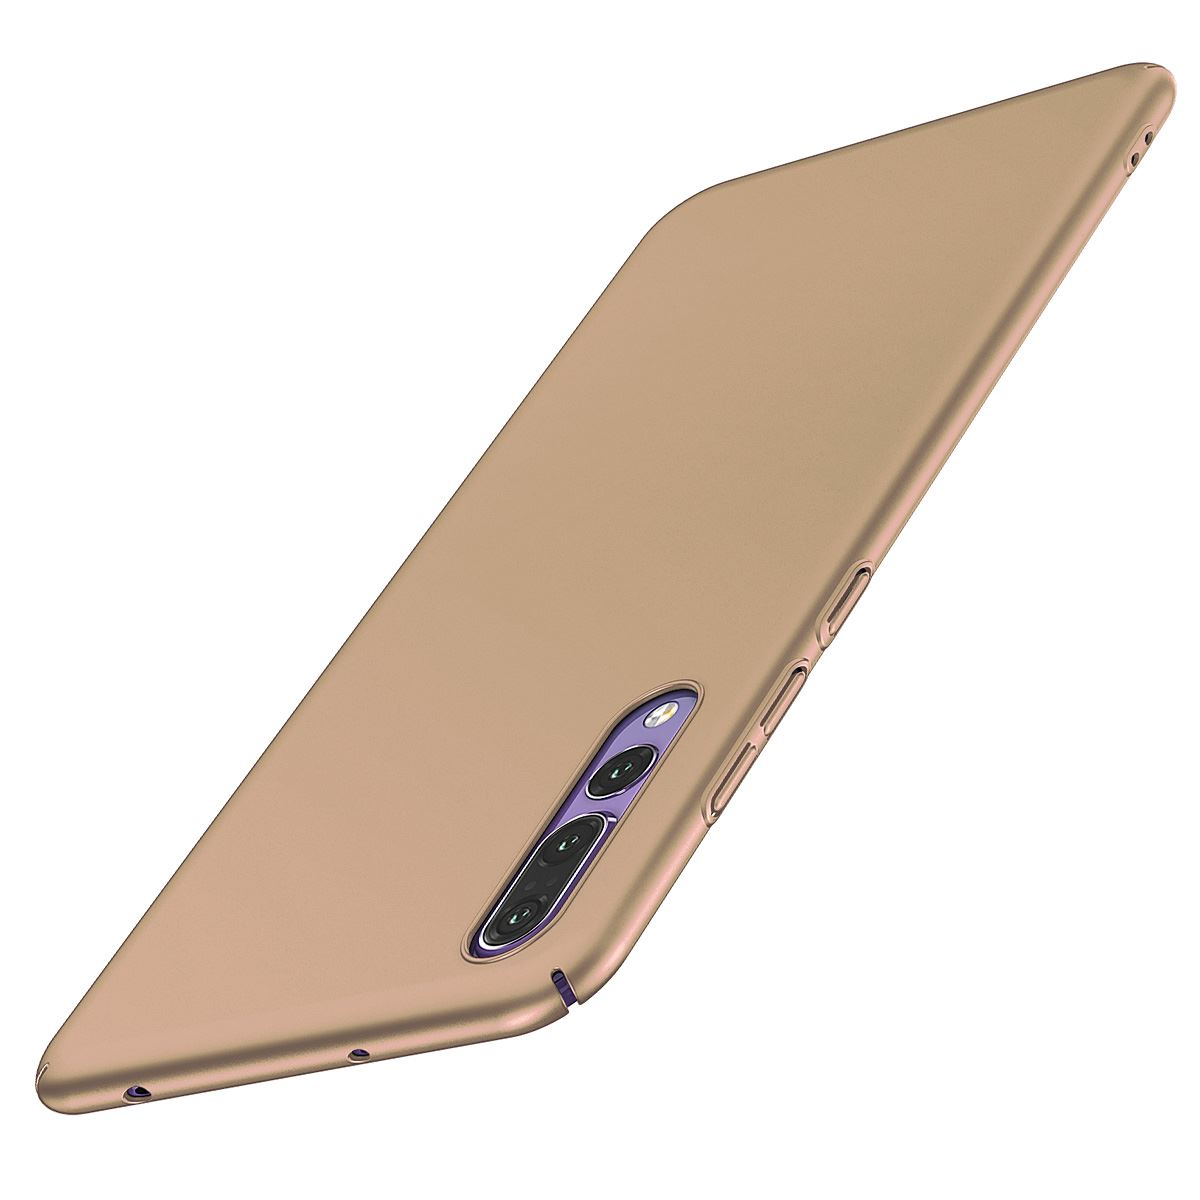 Luxury-Protective-Slim-Thin-Hard-Back-Case-Cover-For-Huawei-P20-Pro-P10-P-Smart thumbnail 57